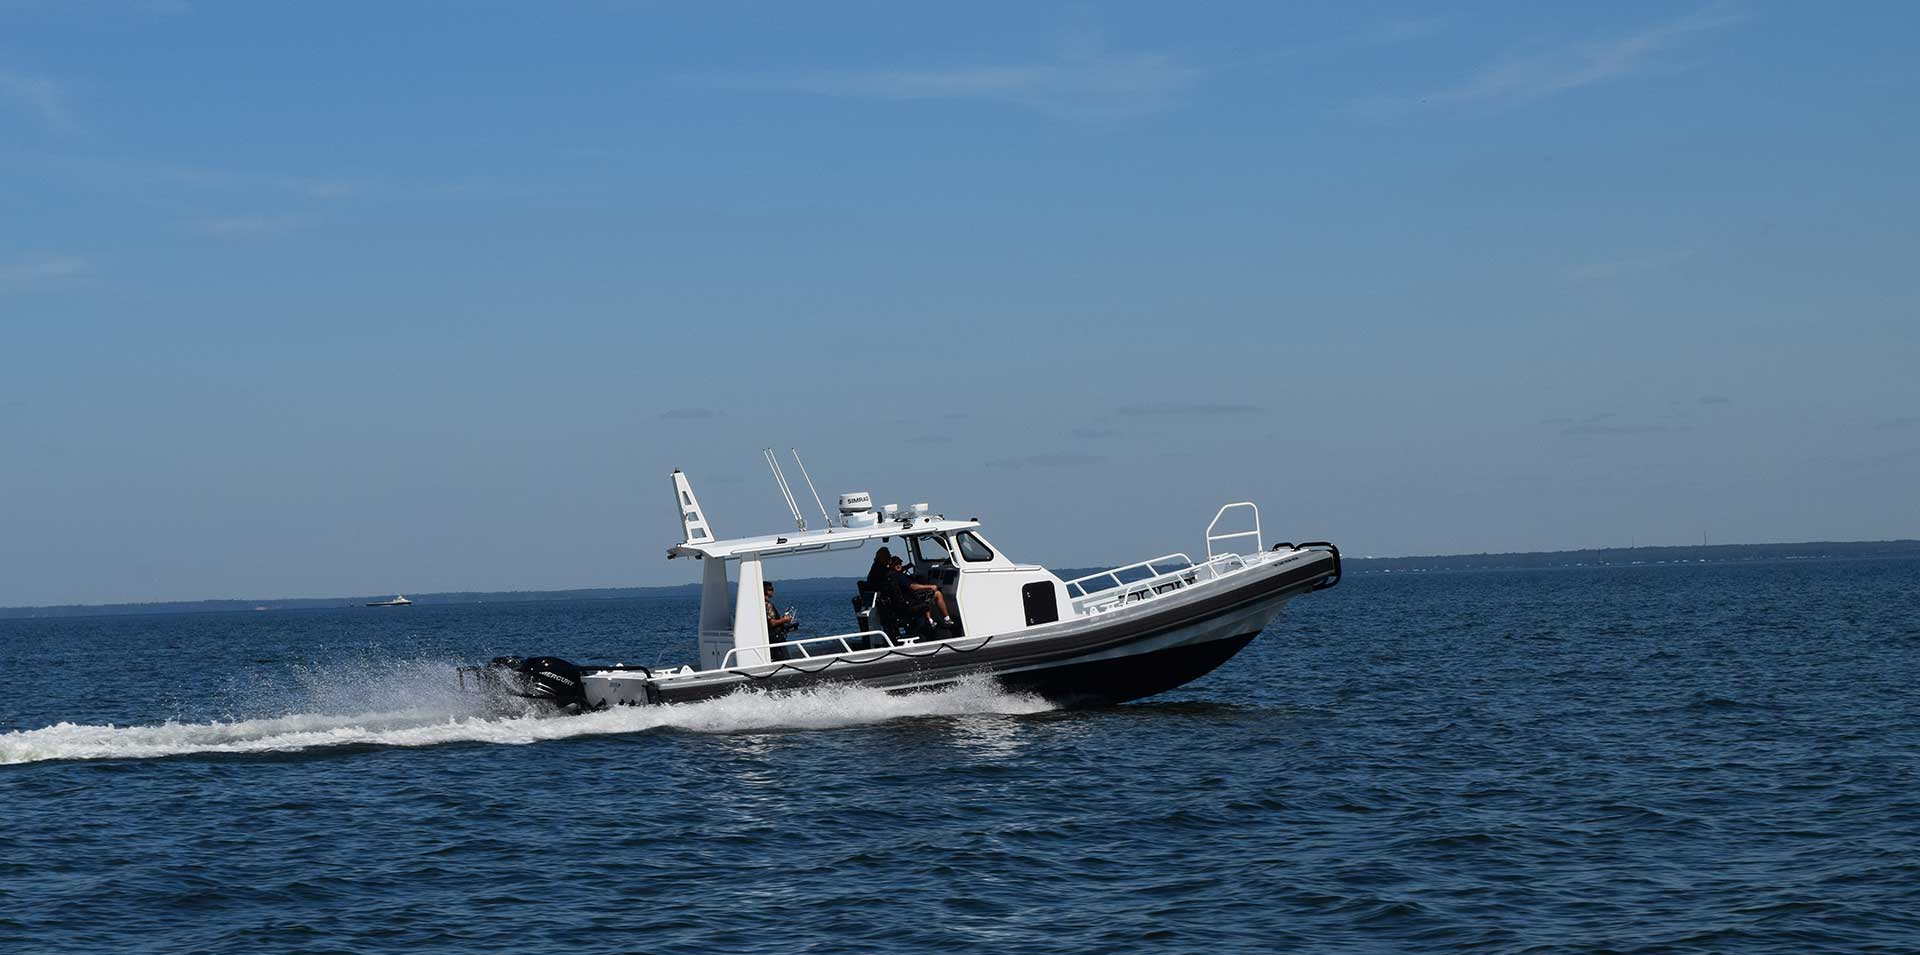 Silver Ships Ambar Series AM 1200 patrol boat on the ocean with open pilothouse